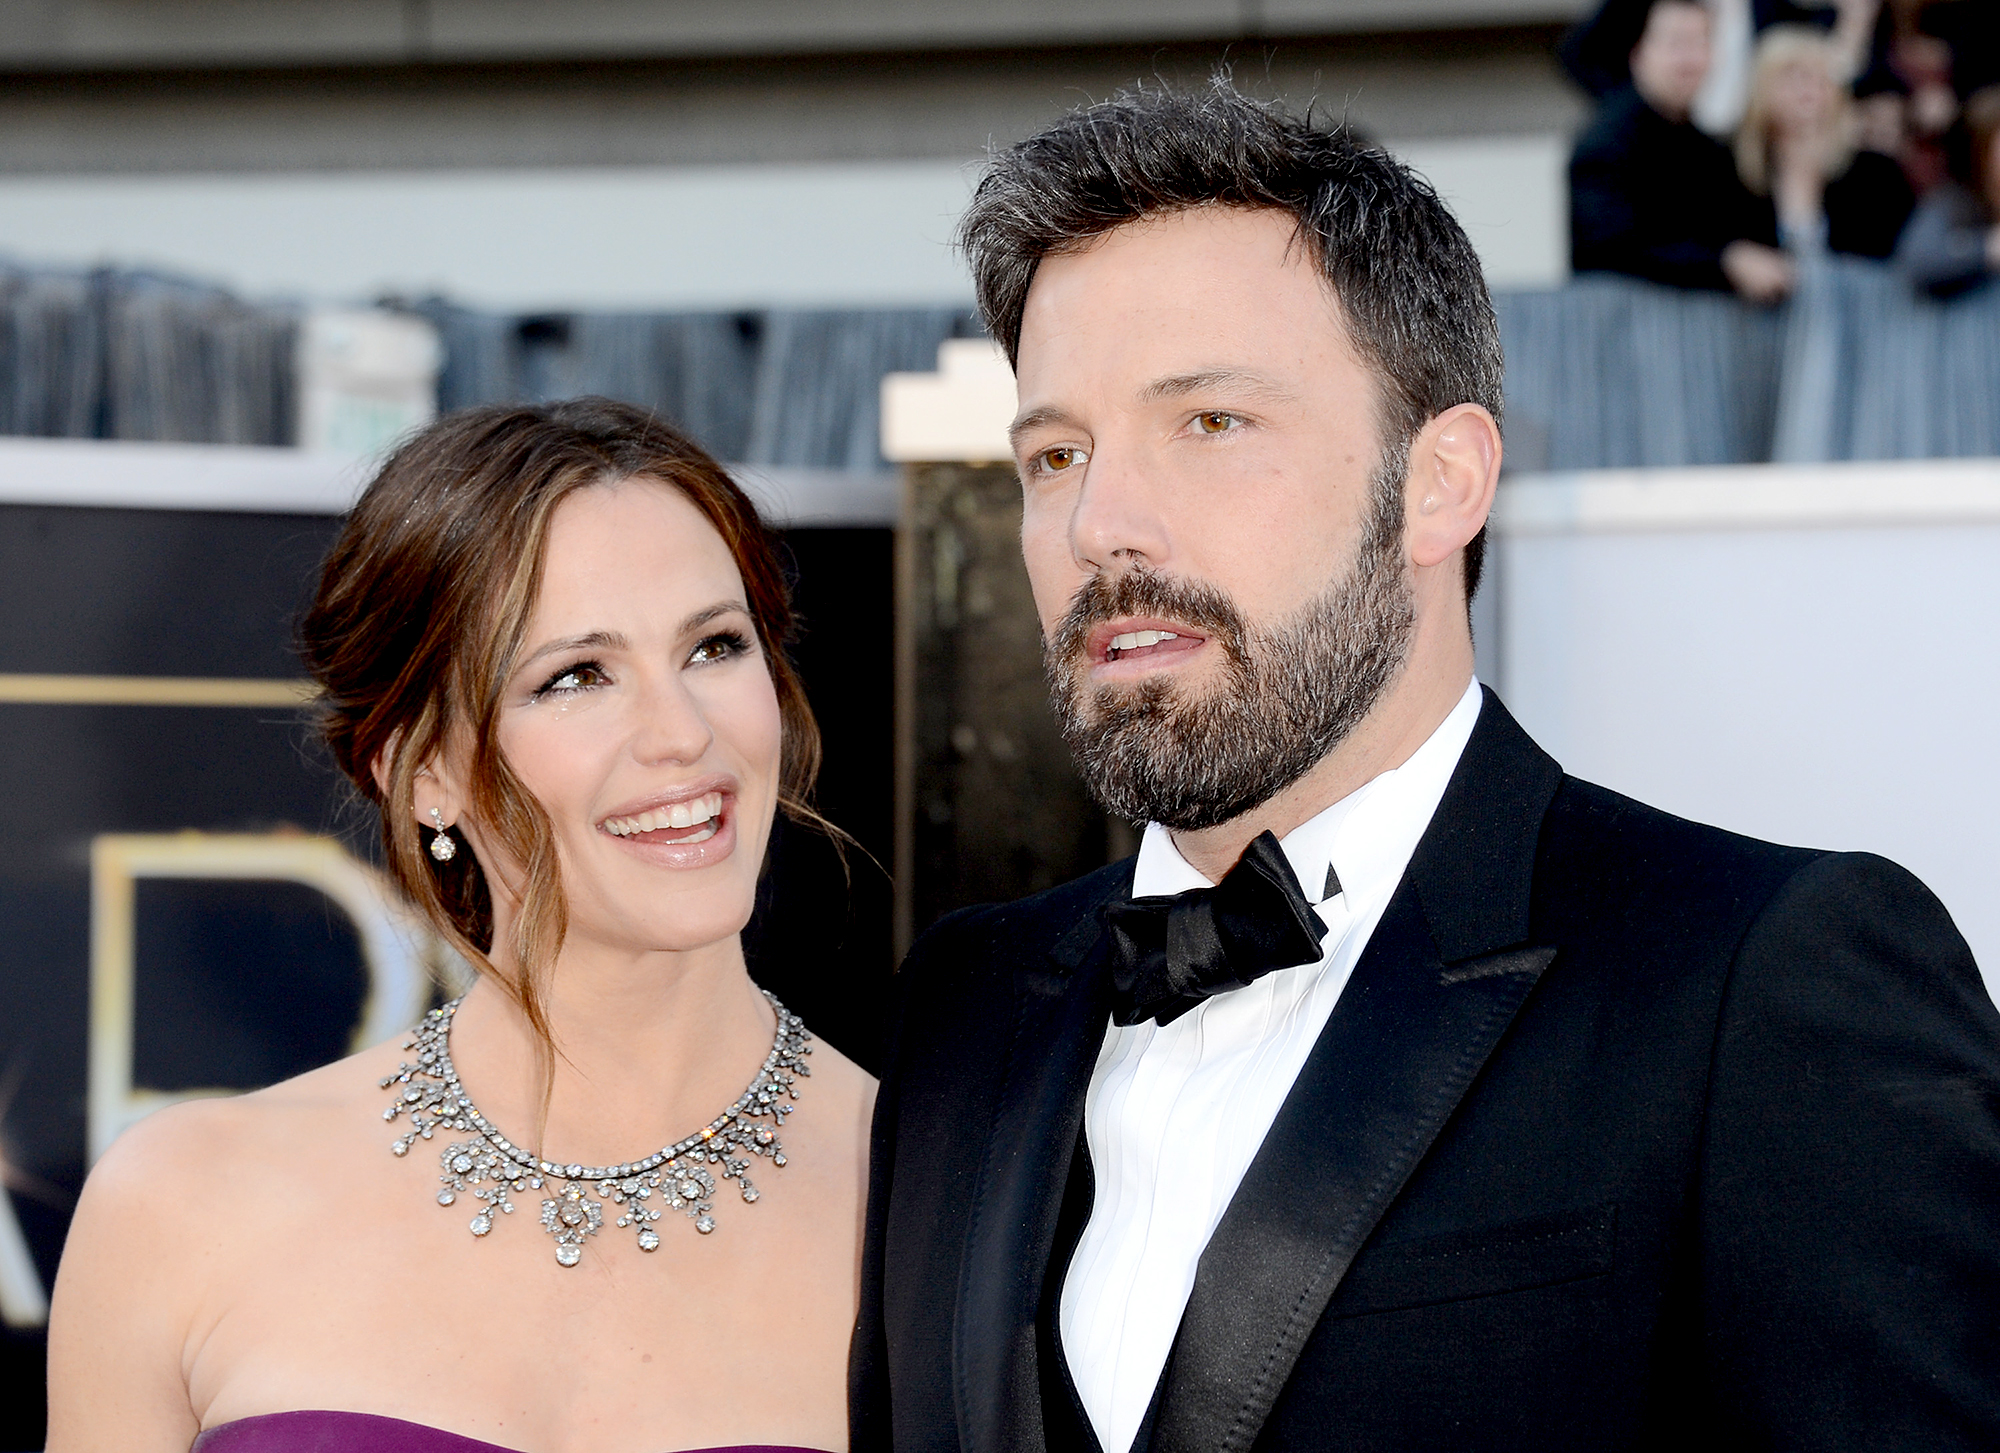 "Ben-Affleck-and-Jennifer-Garner-coparenting - The 13 Going on 30 star, who started dating businessman John Miller in October 2018, opened up about her divorce in a candid interview with Vanity Fair in March 2016. ""I didn't marry the big, fat movie star. I married him and I would go back and remake that decision. I ran down the beach to him and I would again. You can't have three babies and so much of what we had. He's the love of my life. He's the most brilliant person in any room, the most charismatic, the most generous,"" she raved."